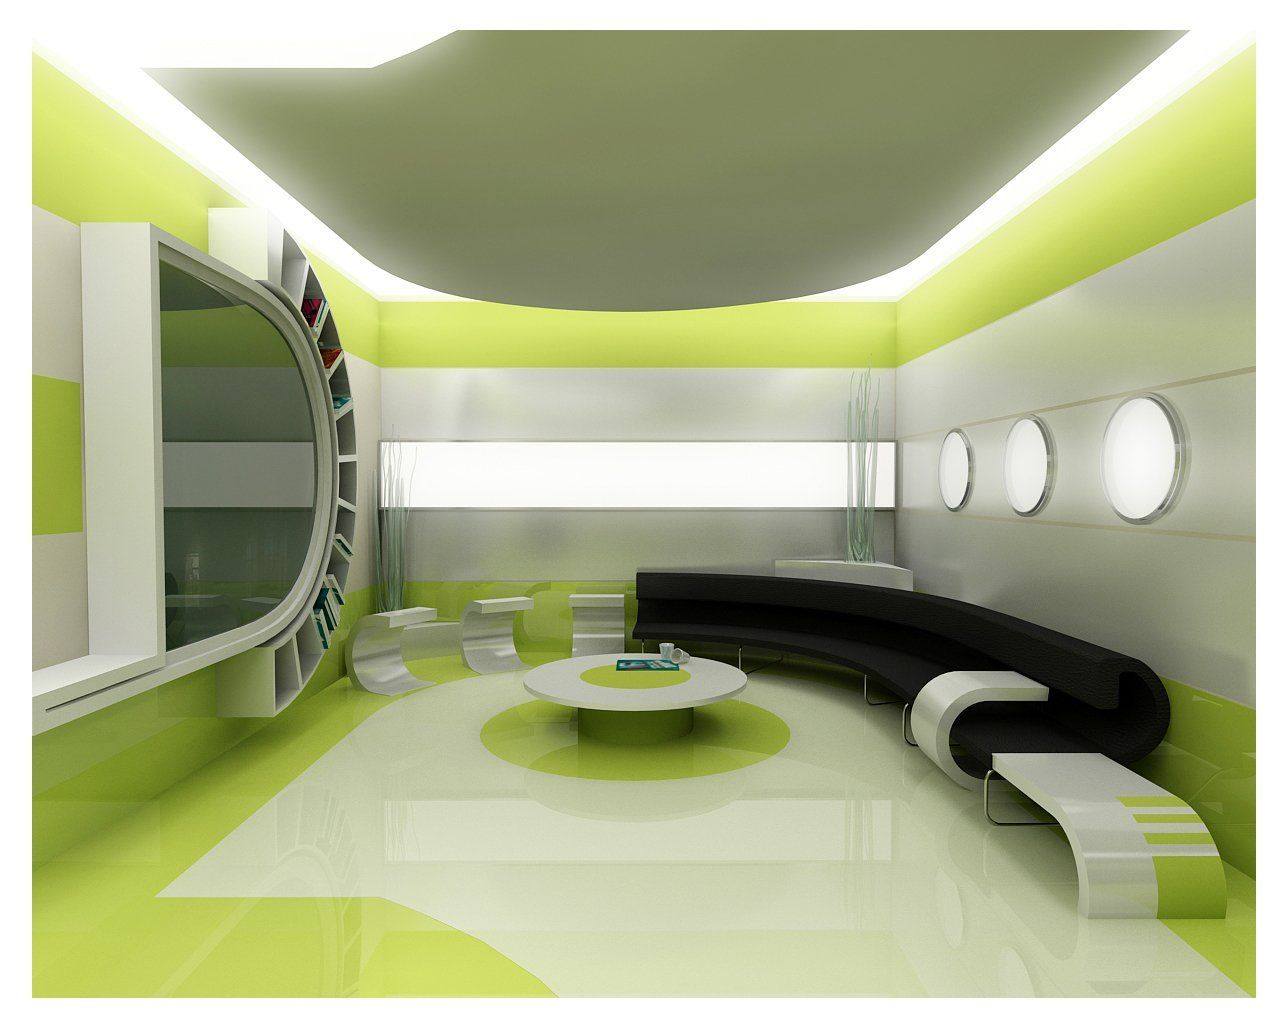 Interior Amusing Living Rooms Design Inspiring Creativity Cosmic Green With Ceiling Light